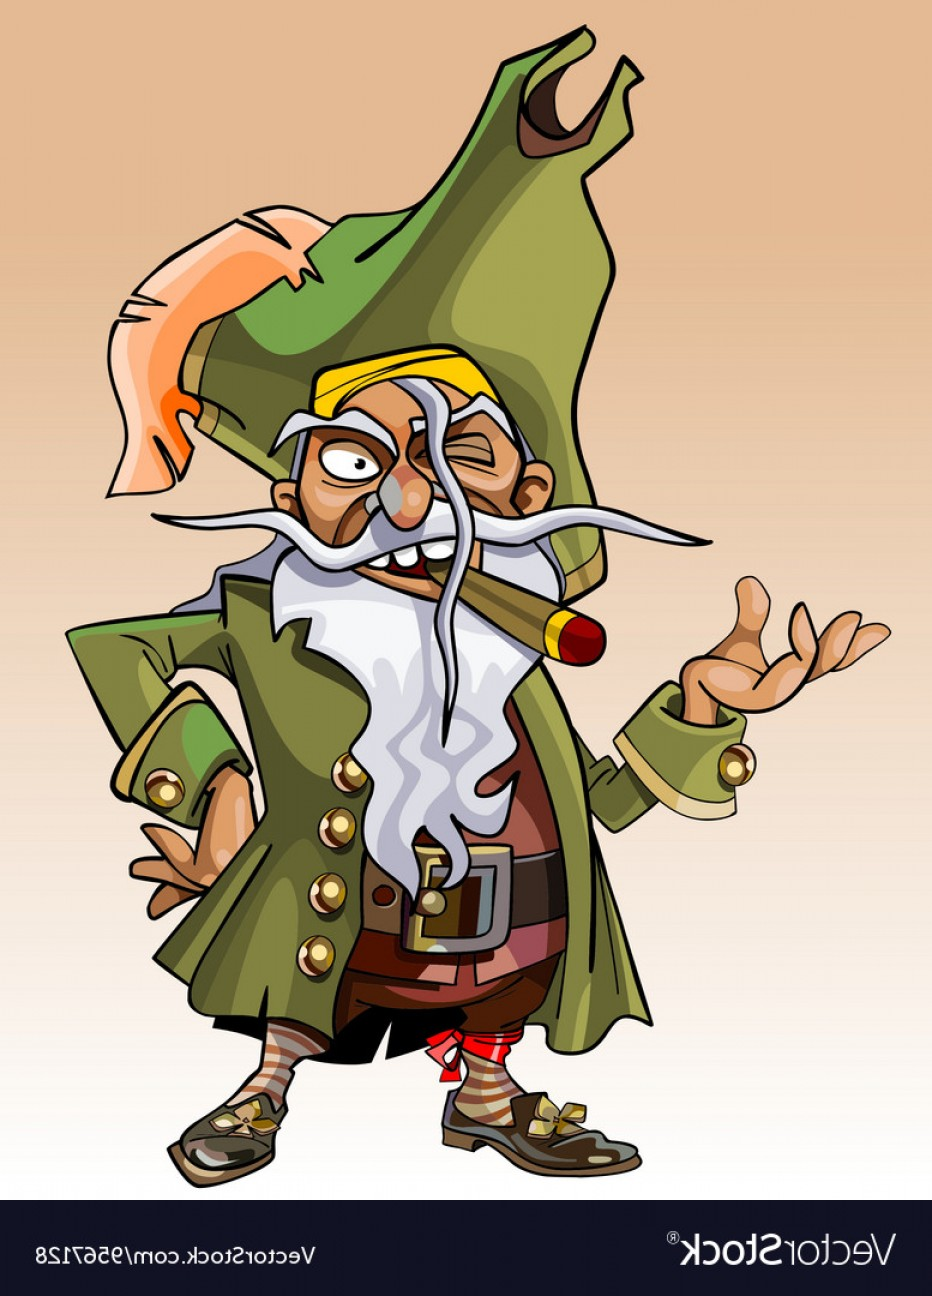 Cigar Cartoon Vector: Dwarf Cartoon Character Pirate With A Cigar Vector